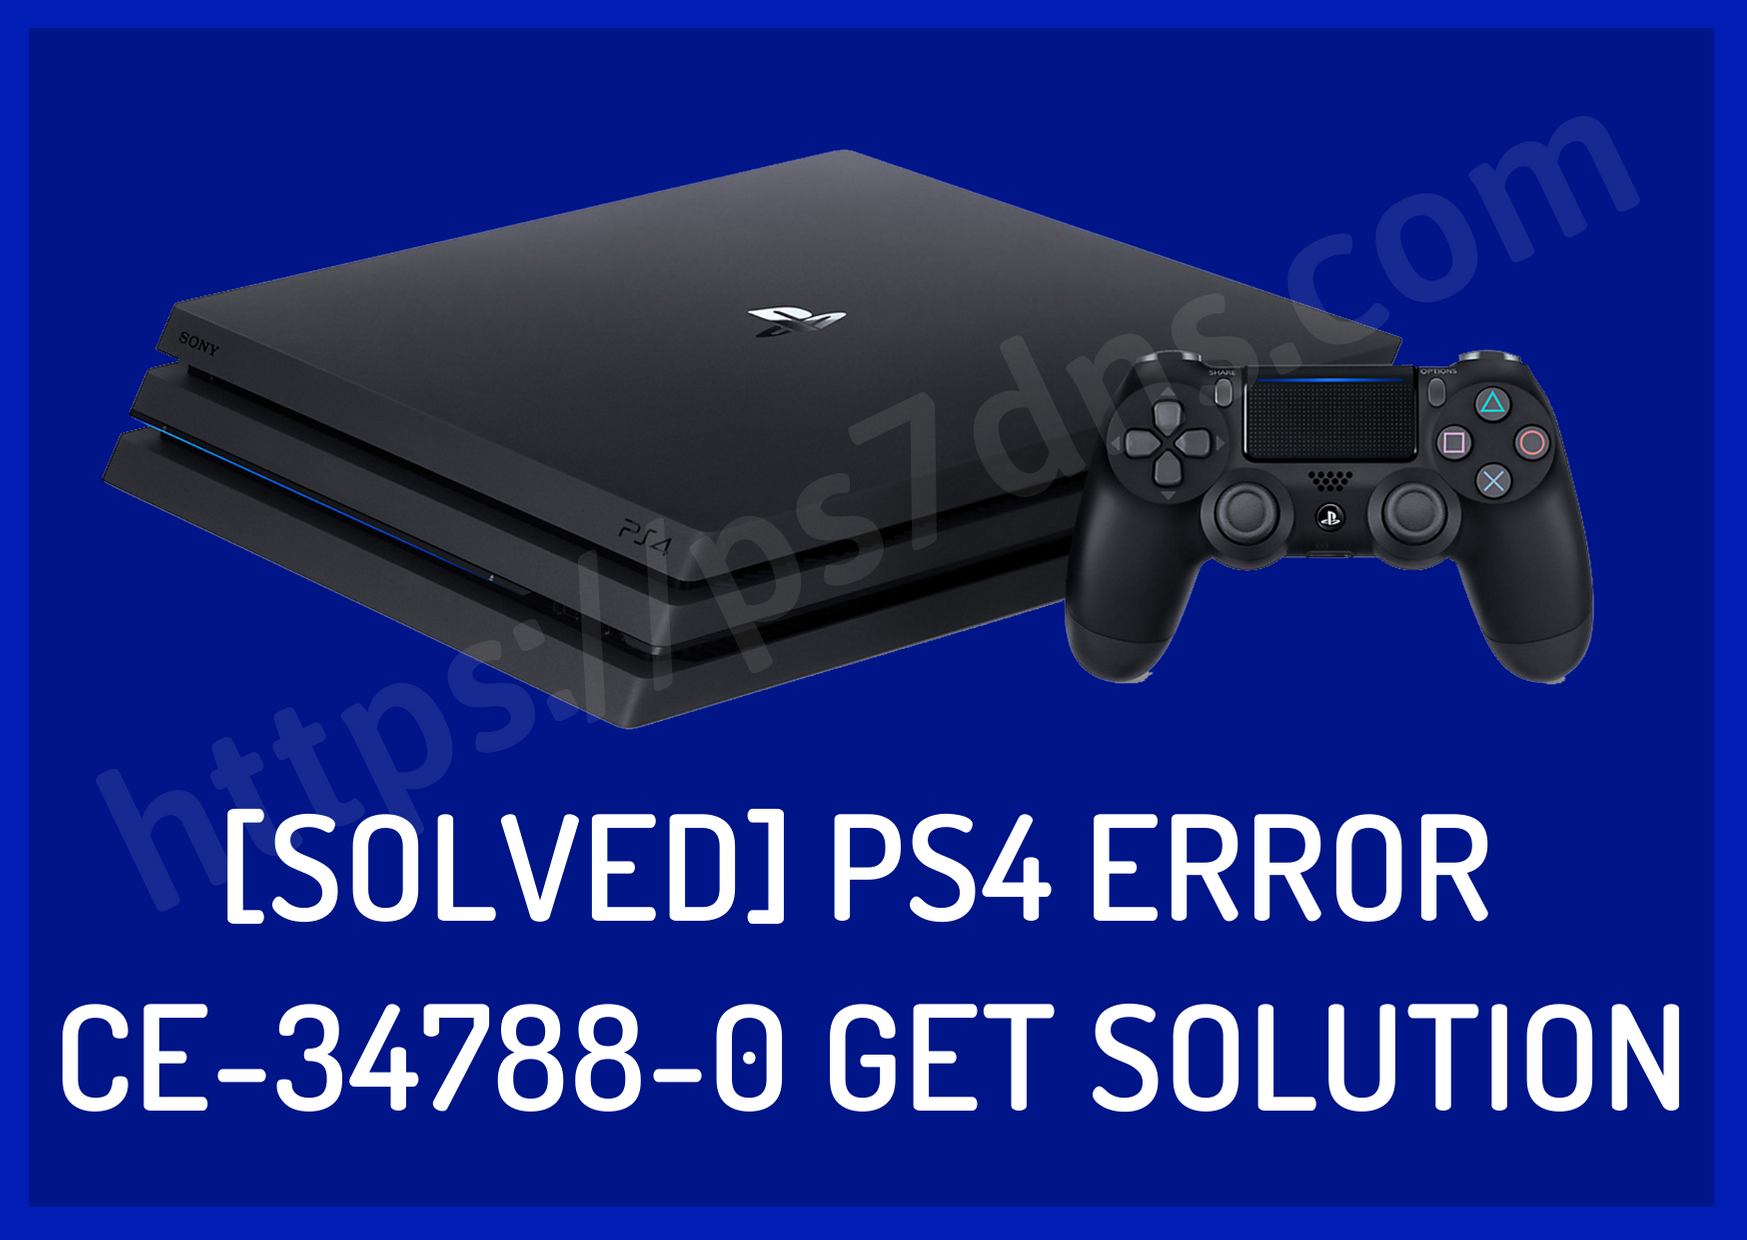 [Solved] PS4 Error CE-34788-0 Get Solution